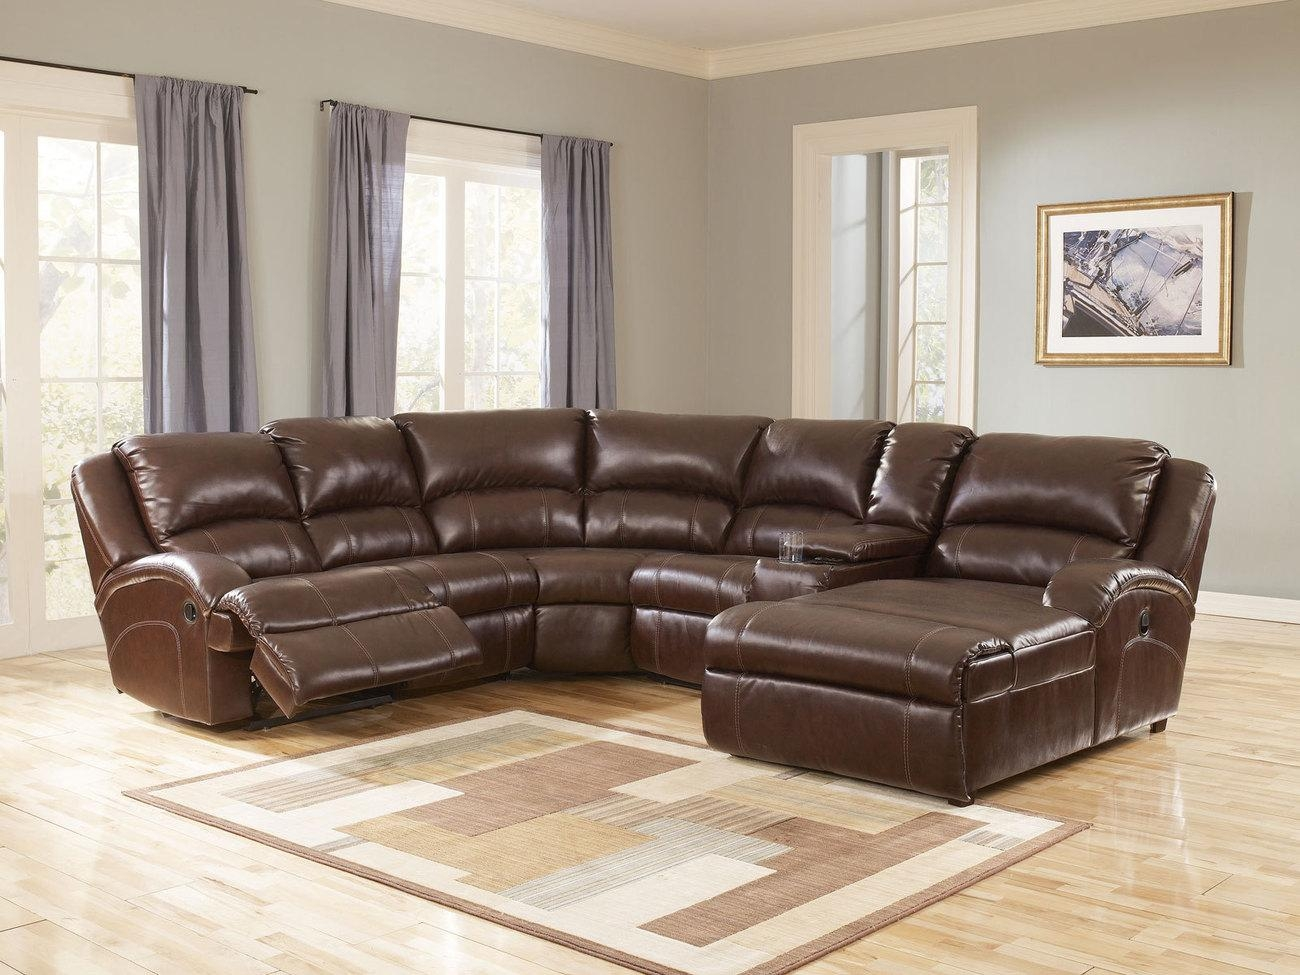 Furniture: Incredible Style Sectional Reclining Sofas For Your With Regard To Sectional Sofas With Electric Recliners (Image 10 of 22)